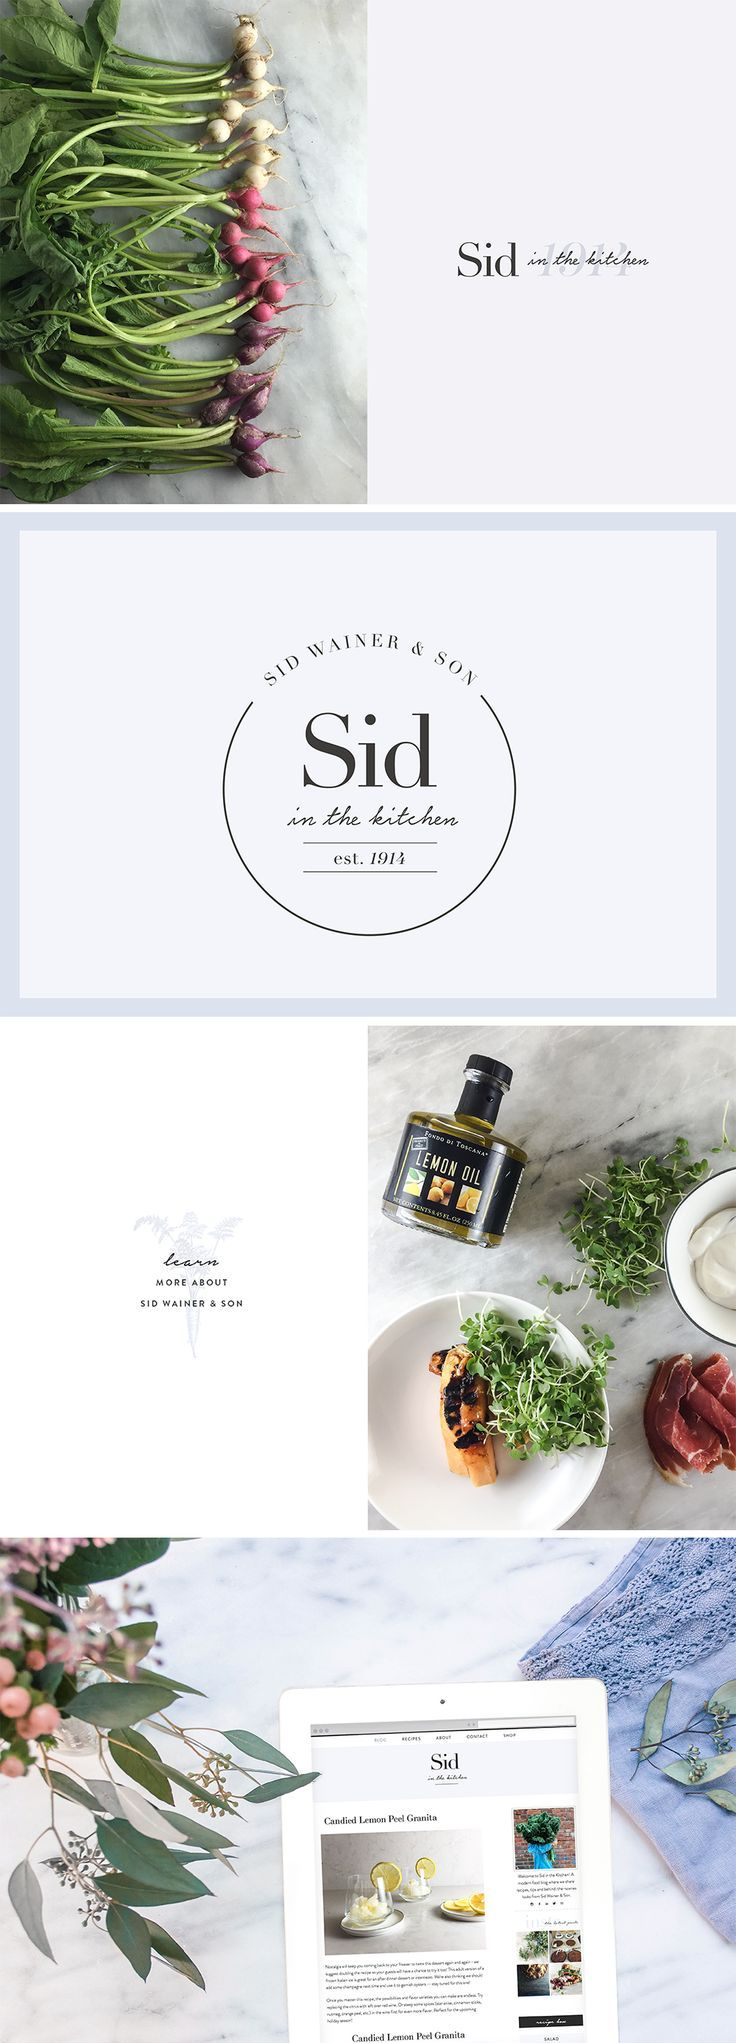 Meg Summerfield Studio | Branding and Squarespace Expertise | Sid in the Kitchen a Gourmet Food Blog by Sid Wainer and Son